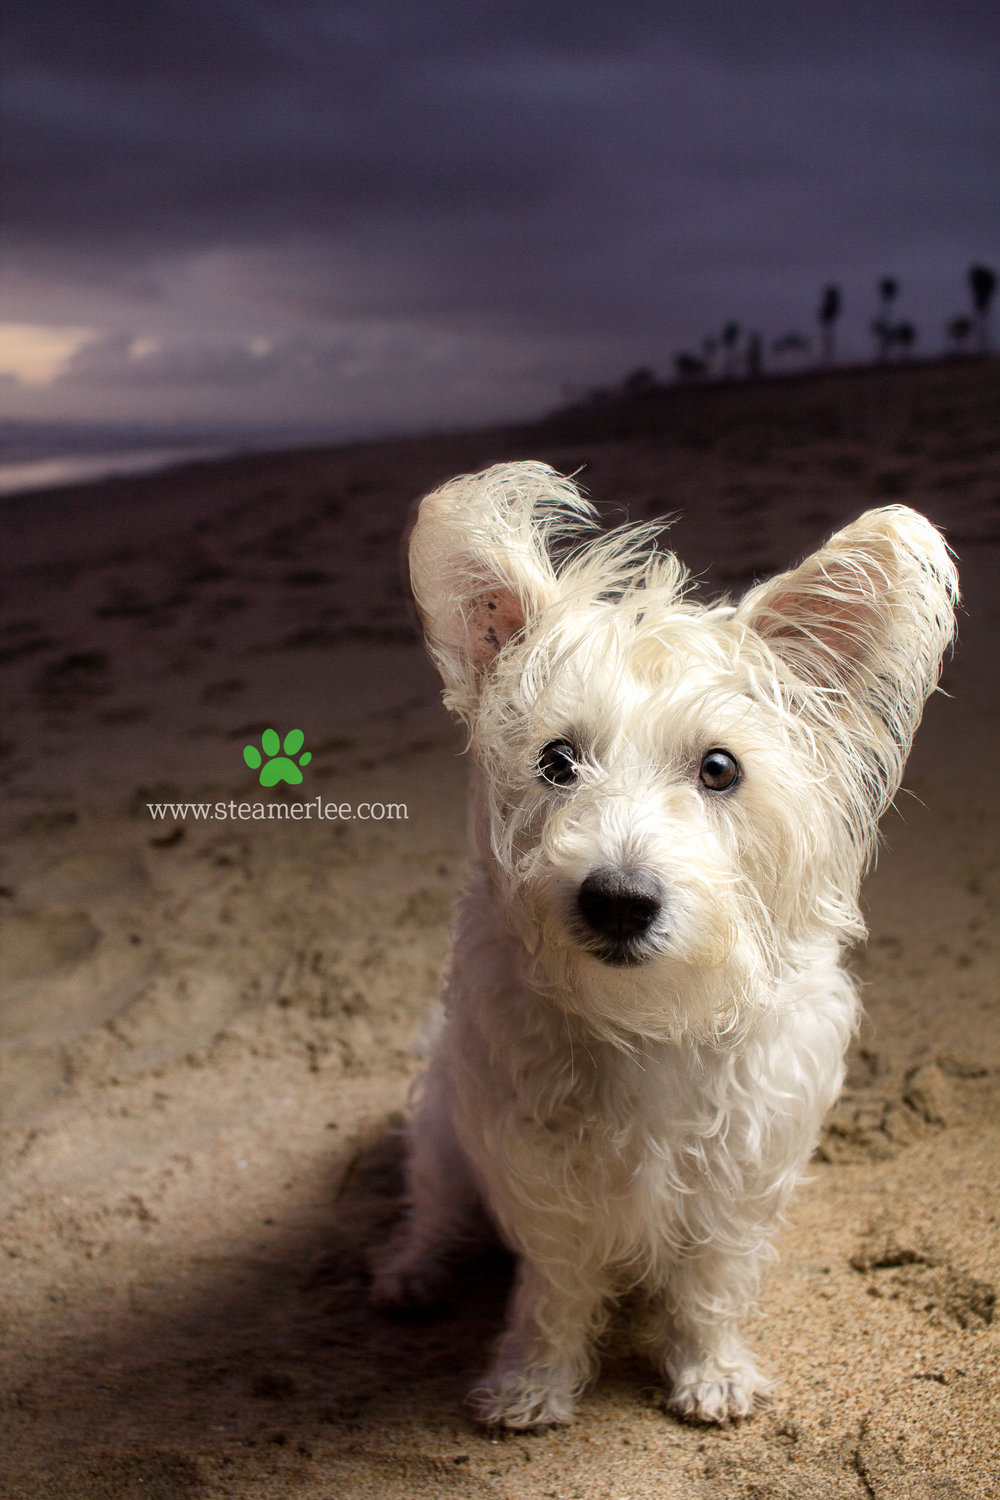 43-Orange-County-Dog-Photographer-Southern-California-Steamer-Lee.JPG